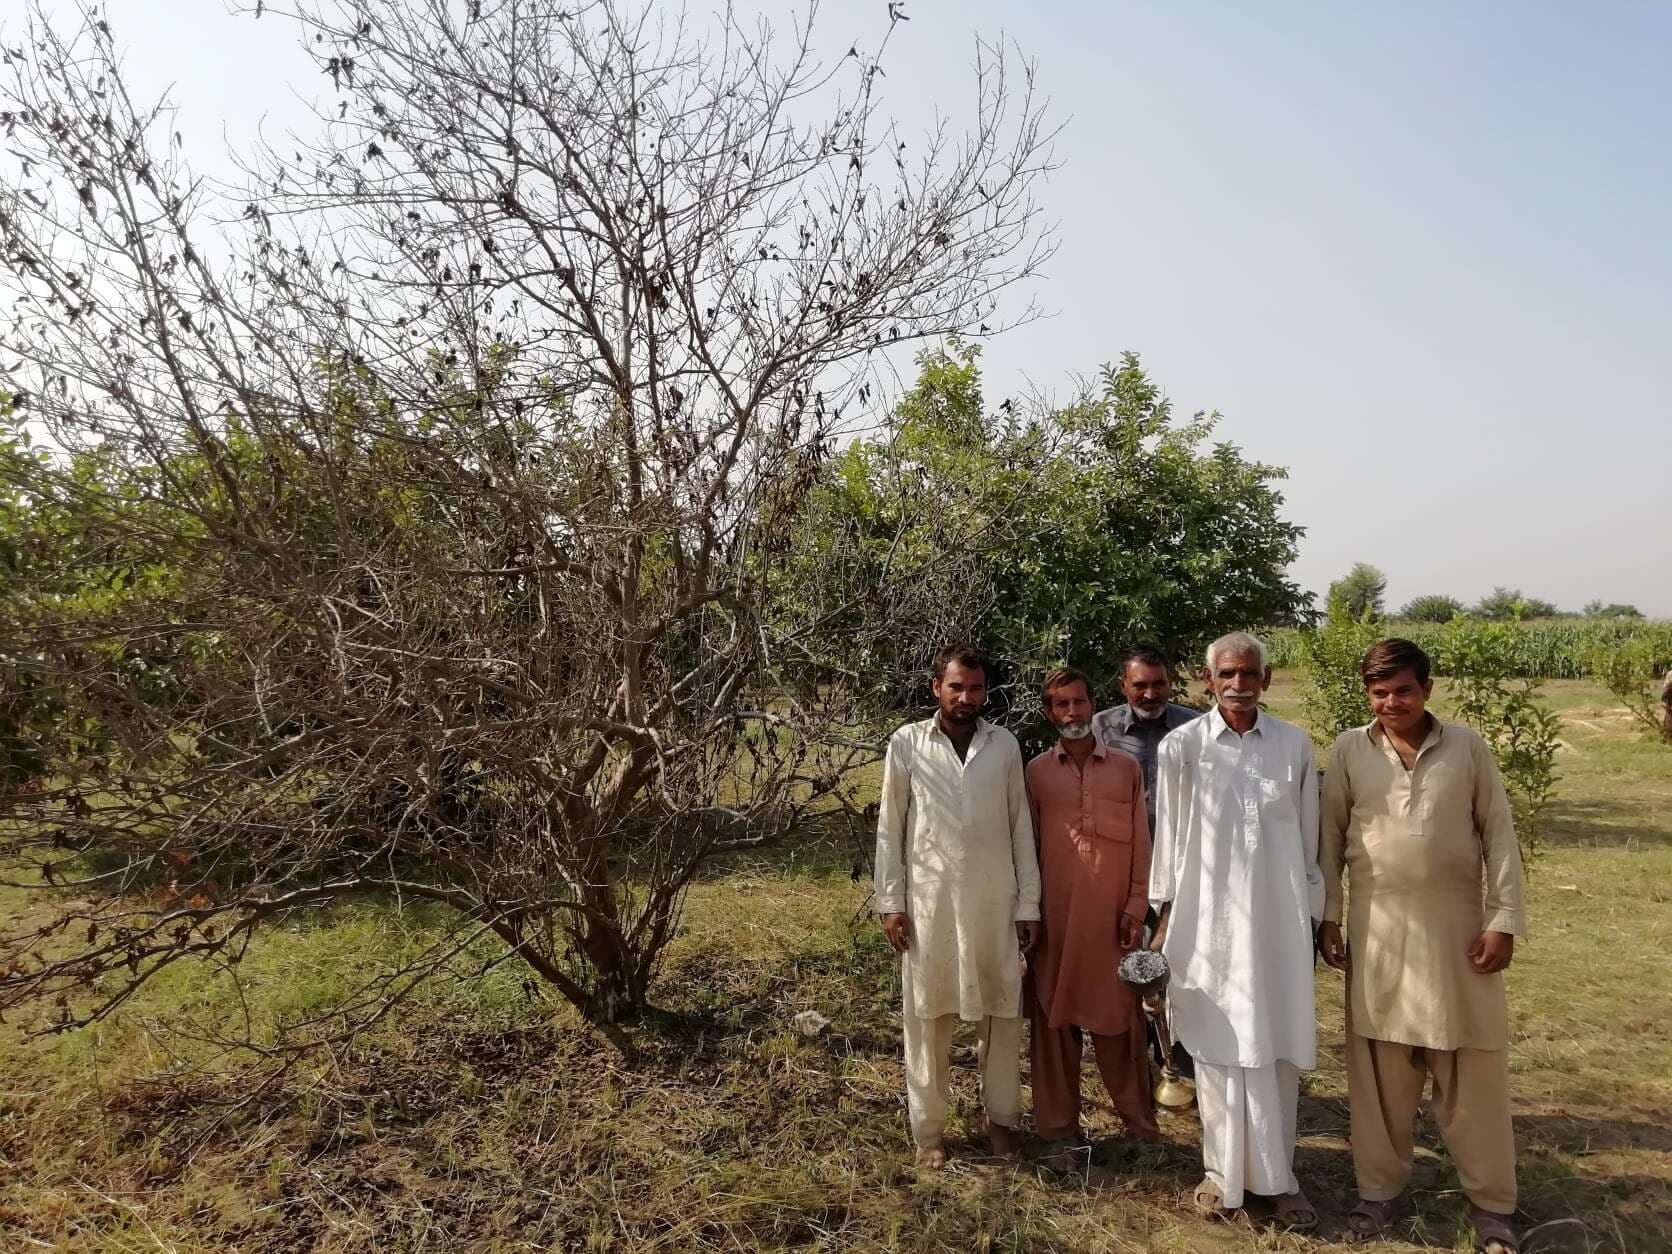 Nazir (second from right) from Chak 76-5R along with other locals standing in front of a guava orchard getting dry due to the power plant